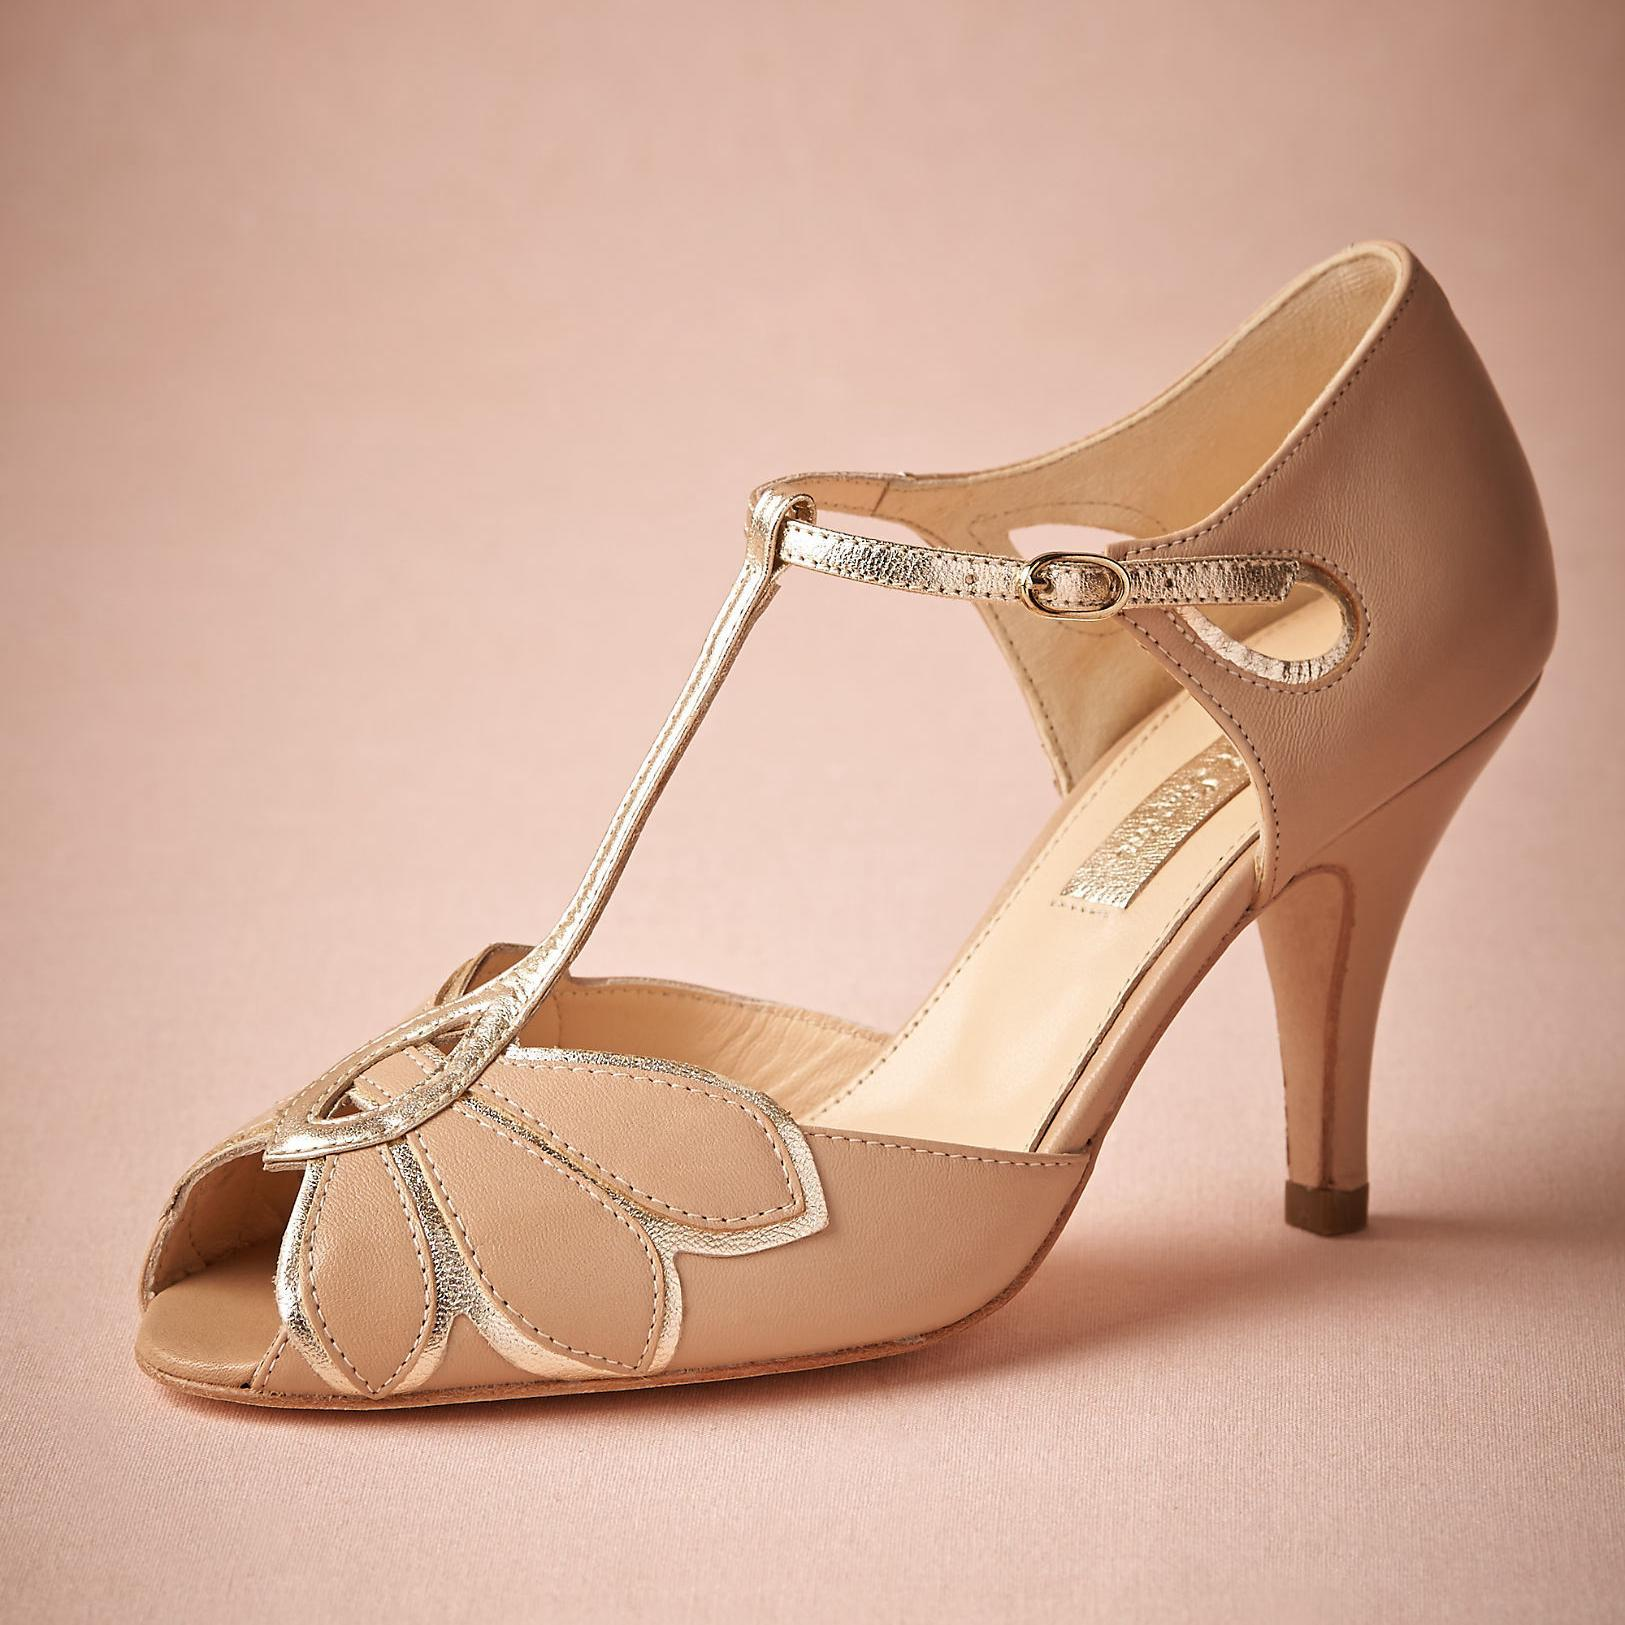 Where to Buy Vintage Wedding Shoes Online? Where Can I Buy Vintage ...